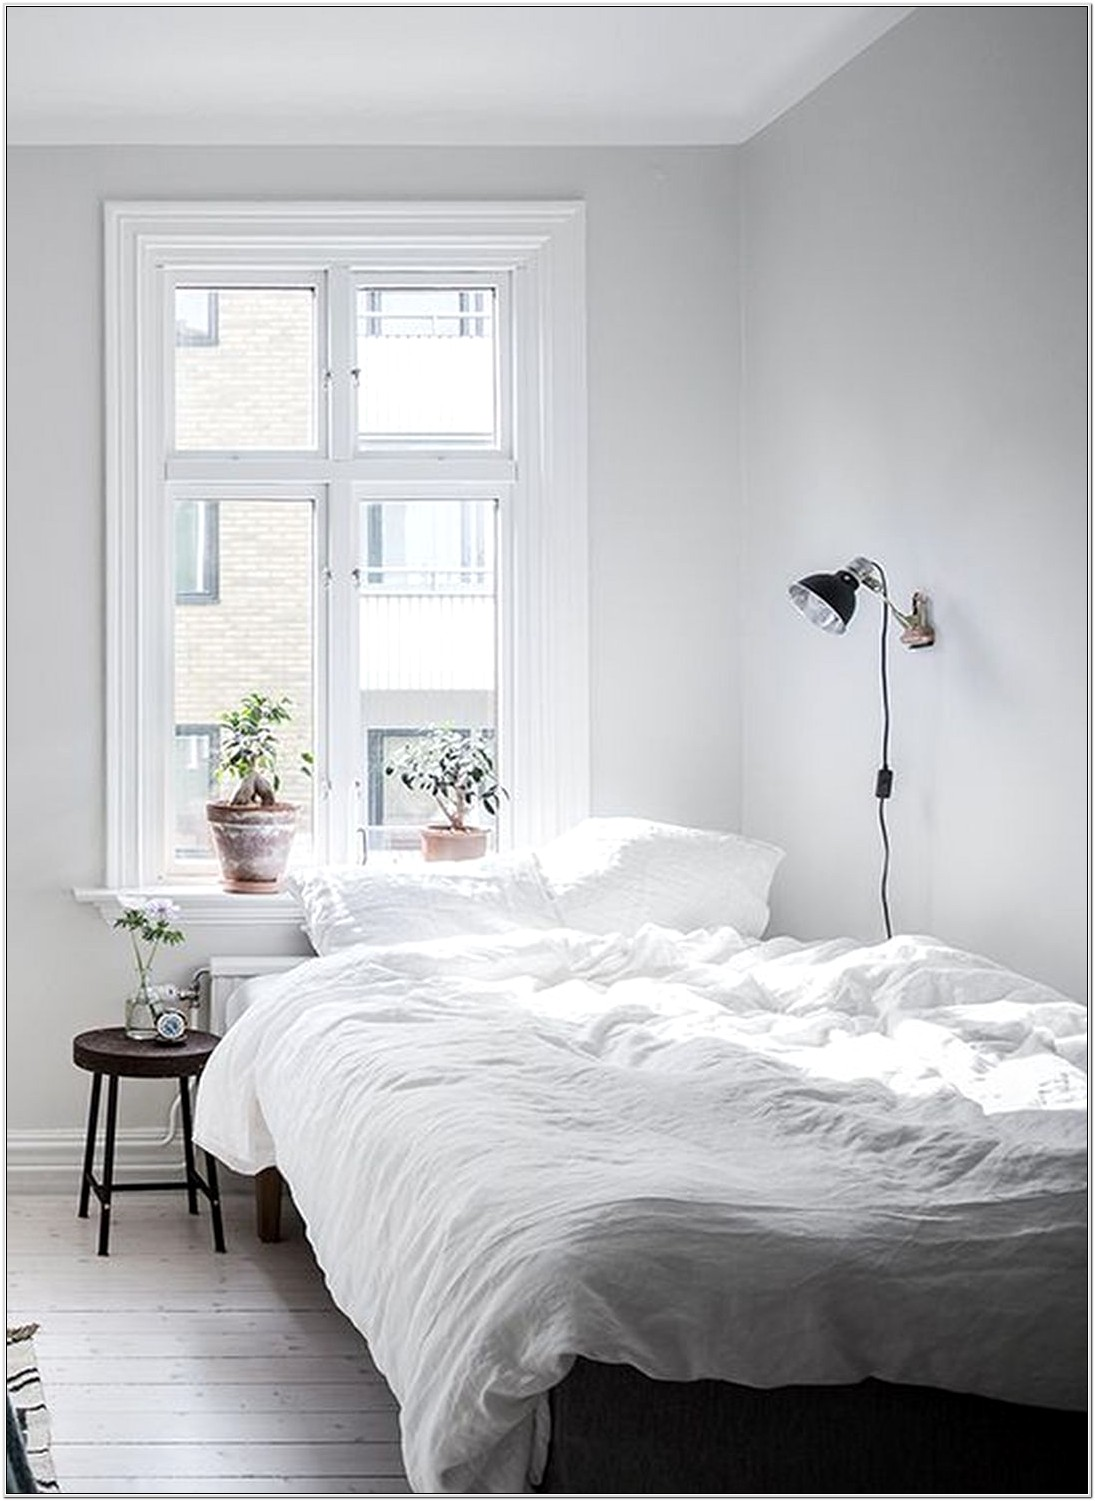 Bedroom Wall Decorating Ideas On A Budget